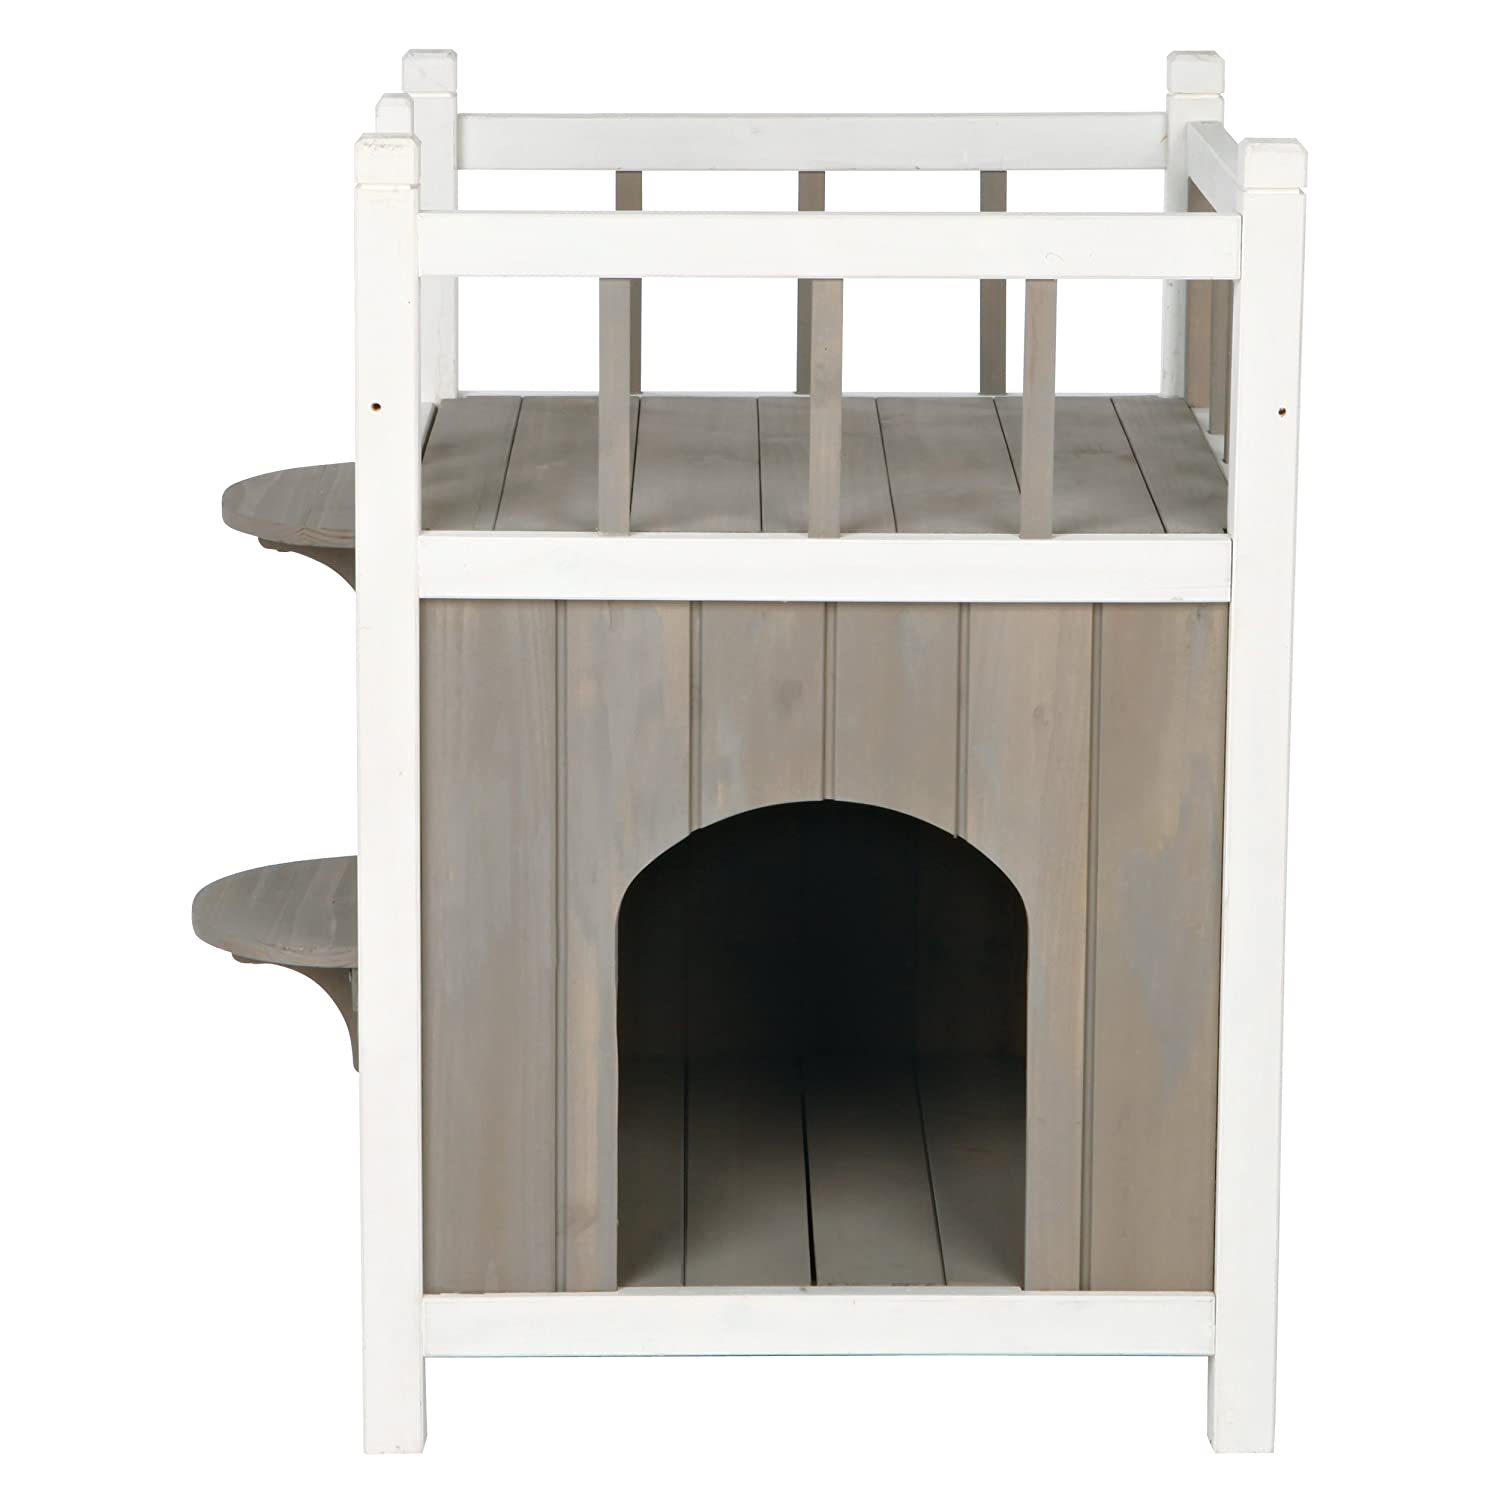 Amazon.com : Trixie Pet Products Wooden Pet Home with Balcony ...